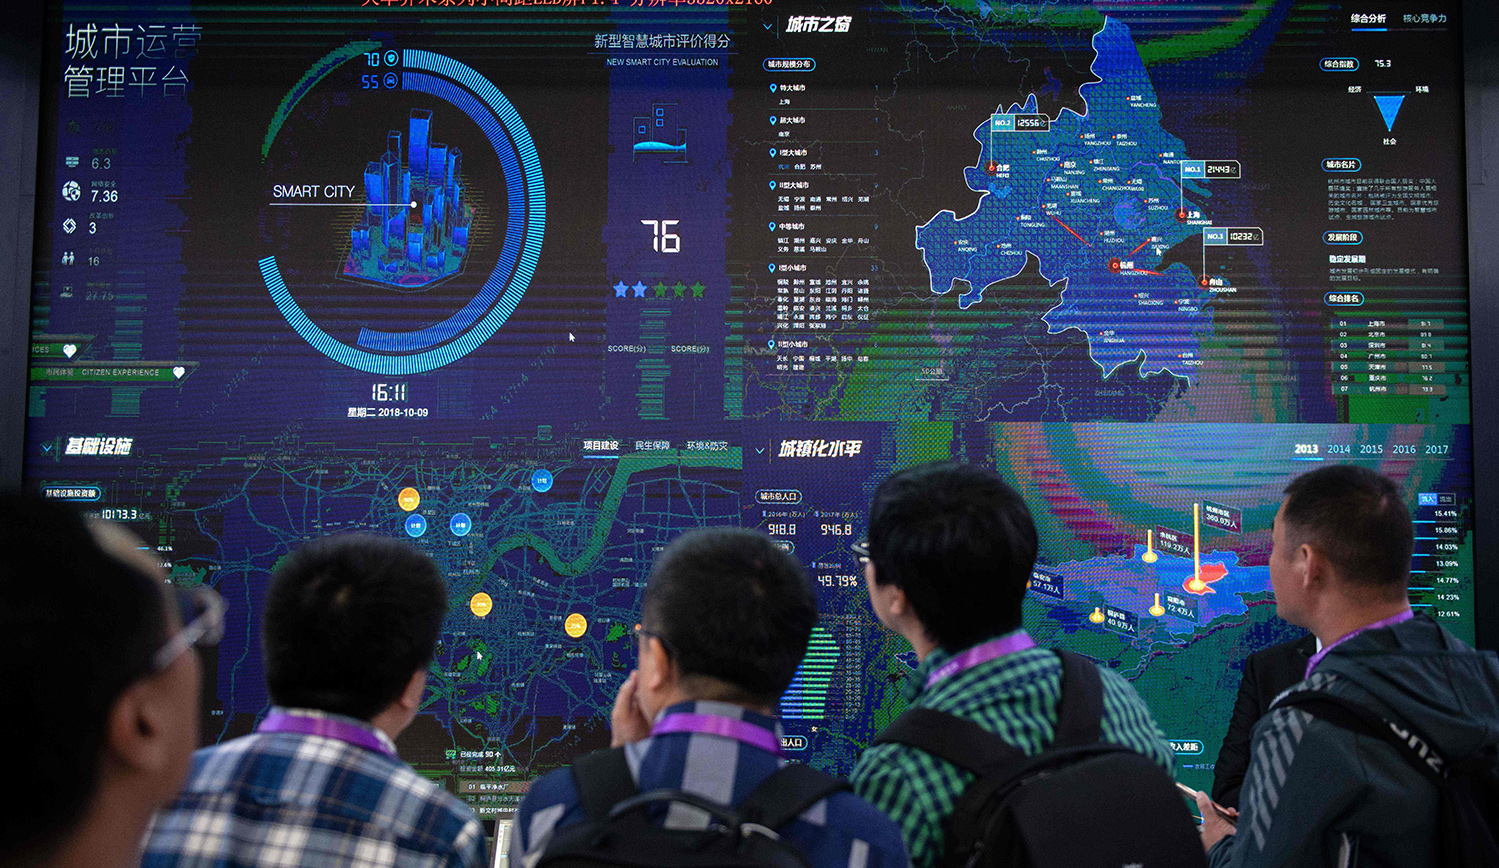 Visitors look at an AI security software program on a screen at the 14th China International Exhibition on Public Safety and Security in Beijing on October 24, 2018. NICOLAS ASFOURI / AFP.